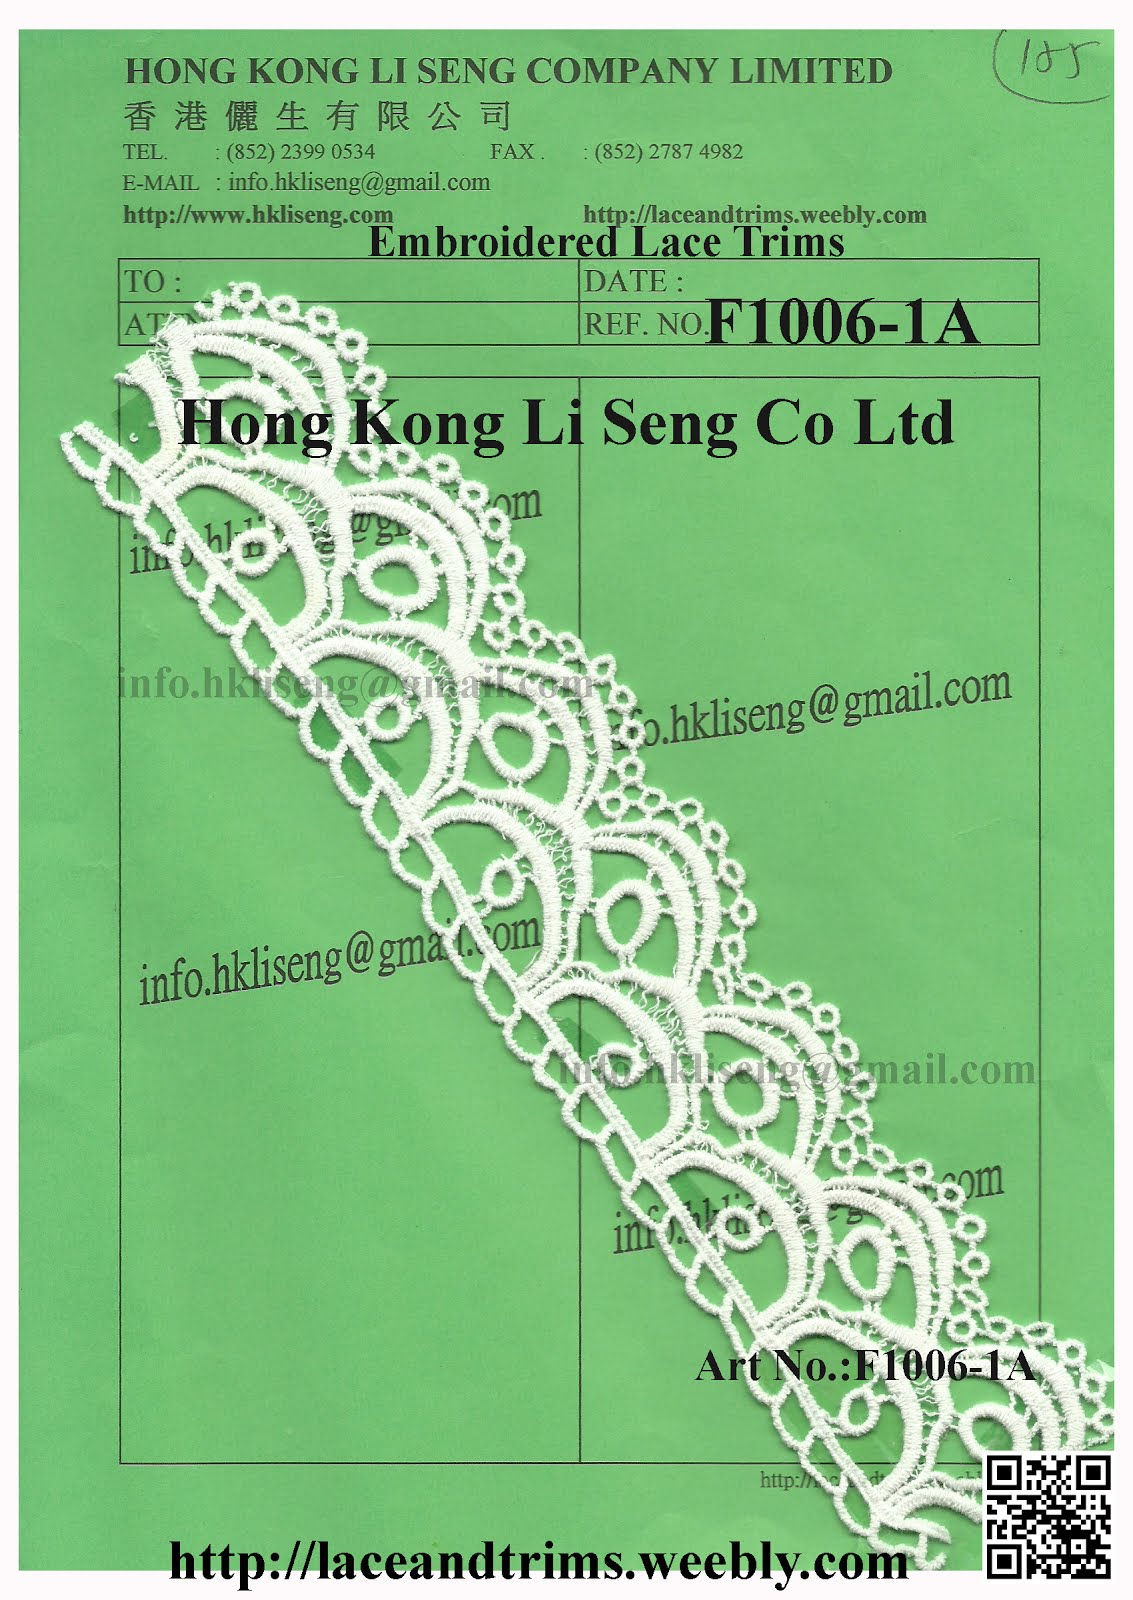 New Pattern Embroidered Lace Trims ( Water Soluble ) Manufacturer - Hong Kong Li Seng Co Ltd